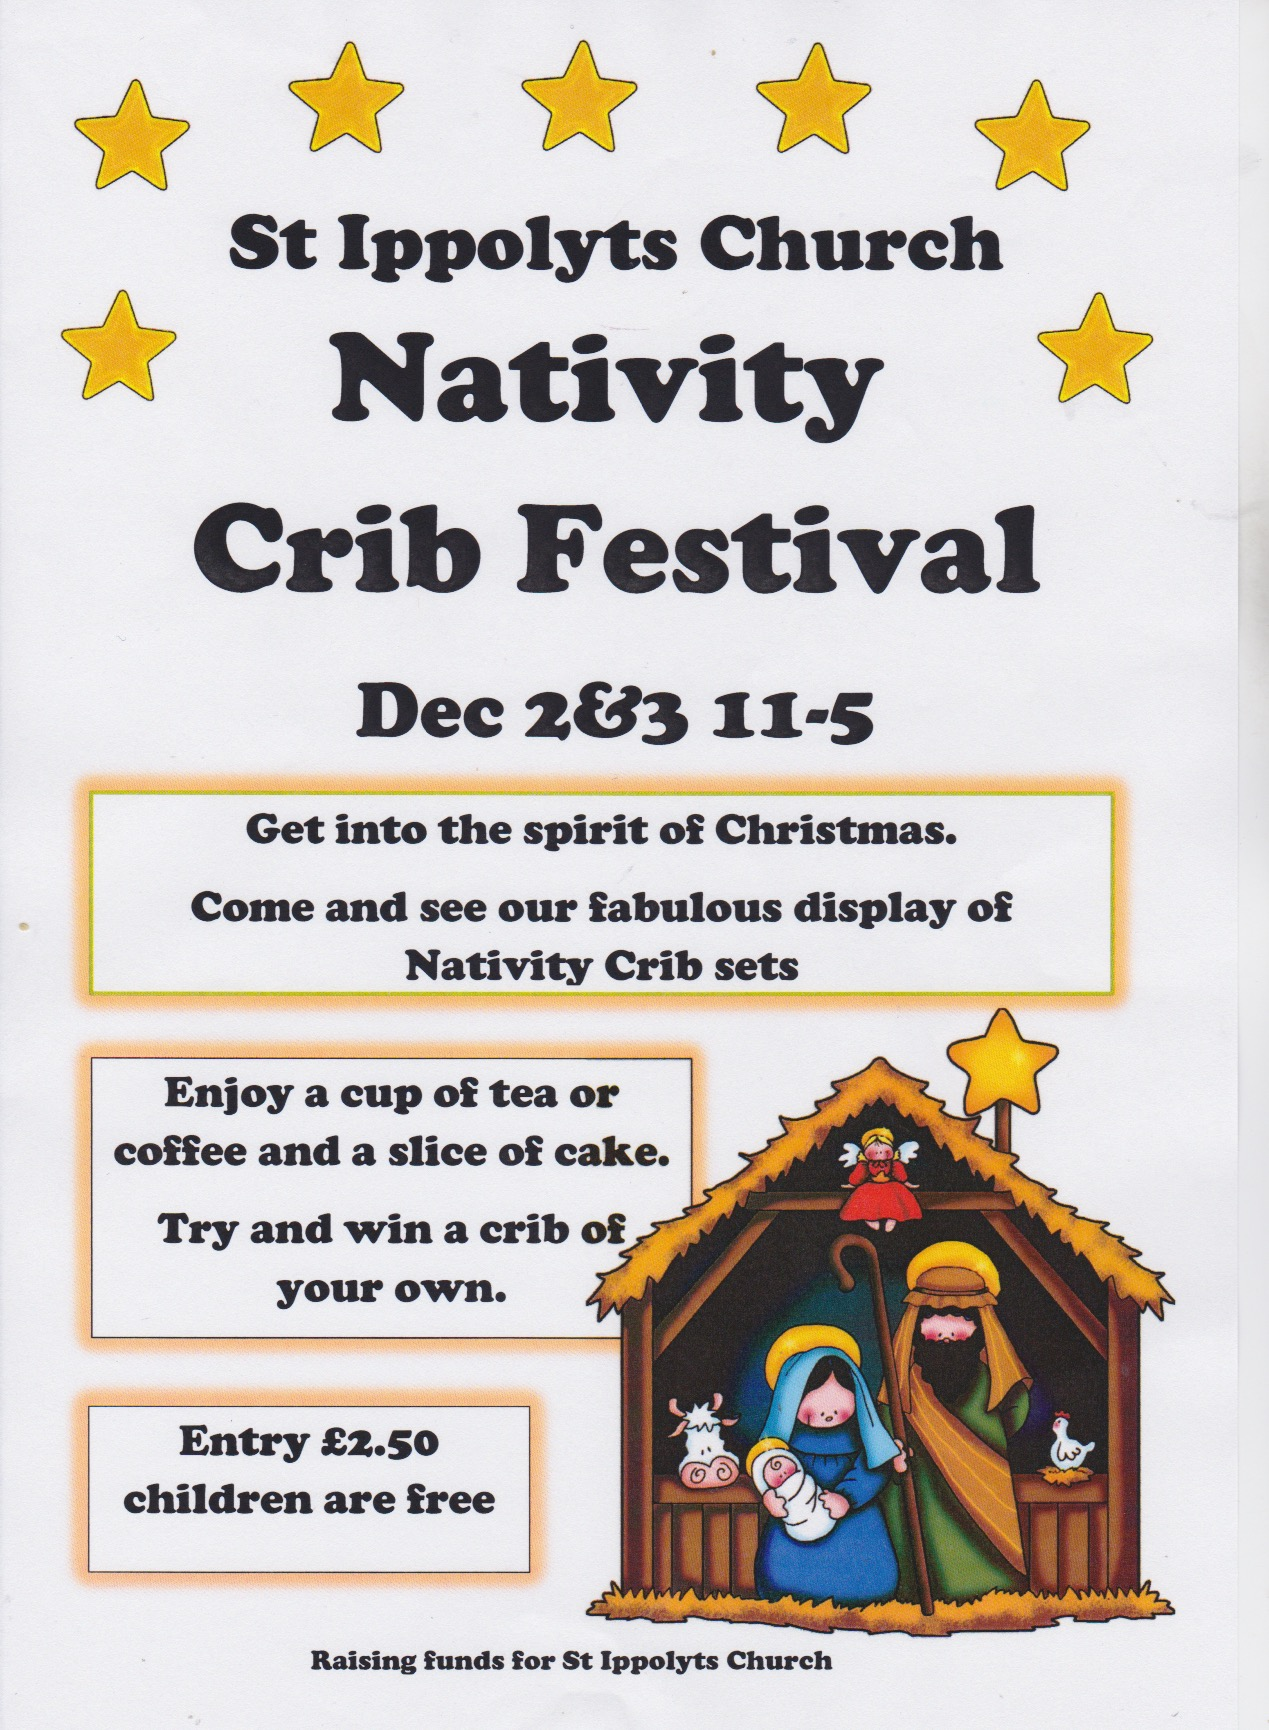 Nativity Crib Festival, 2nd and 3rd December